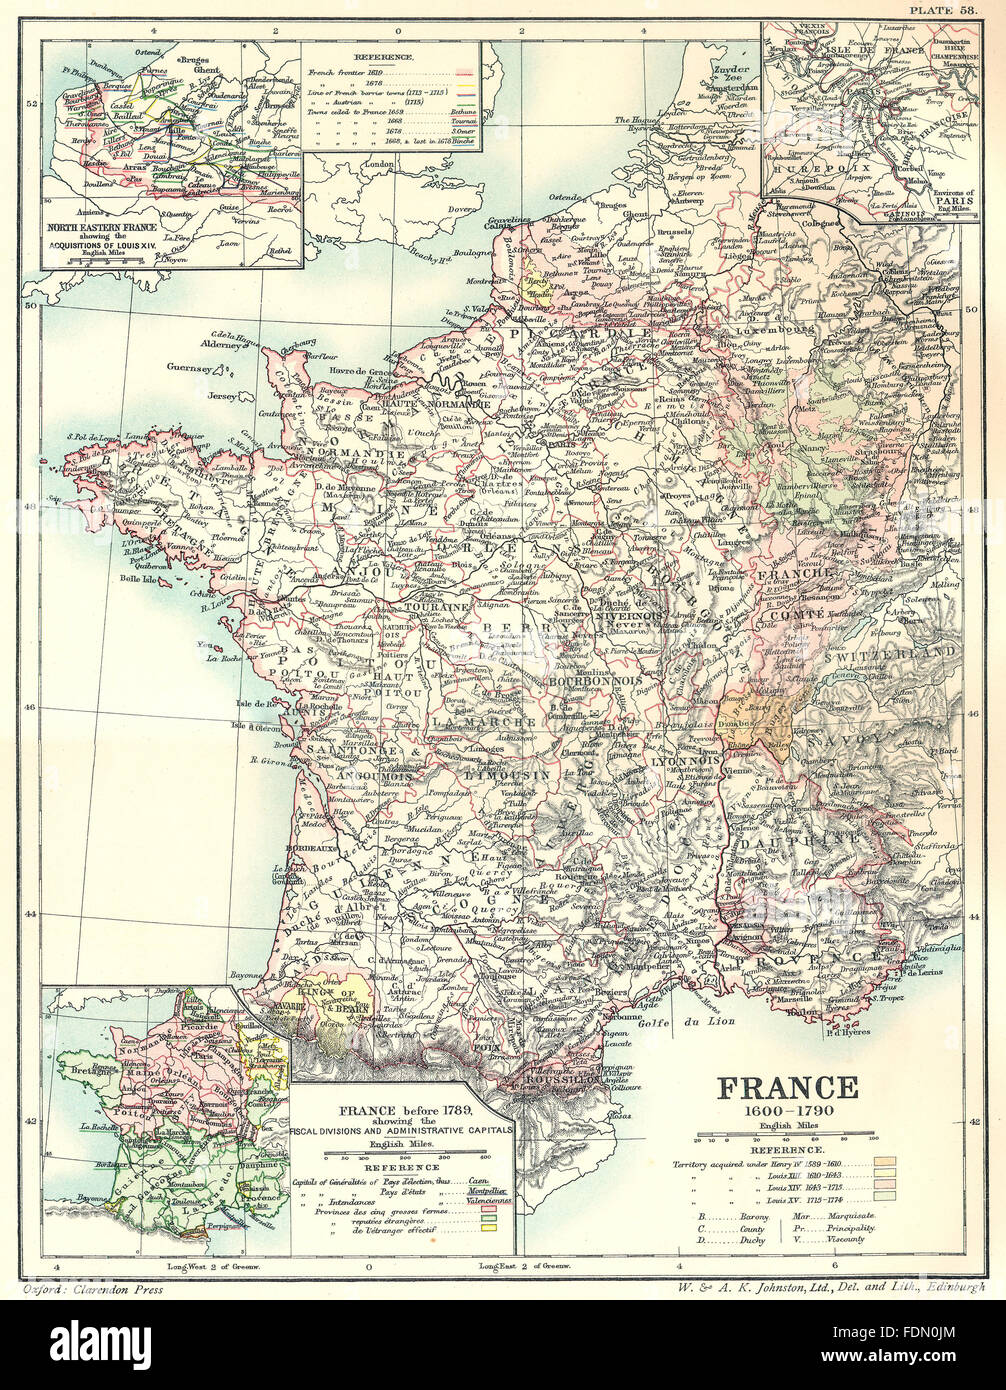 Map Of France 1600.France 1600 1790 Maps N Eastern Acquisitions Louis 14 Paris